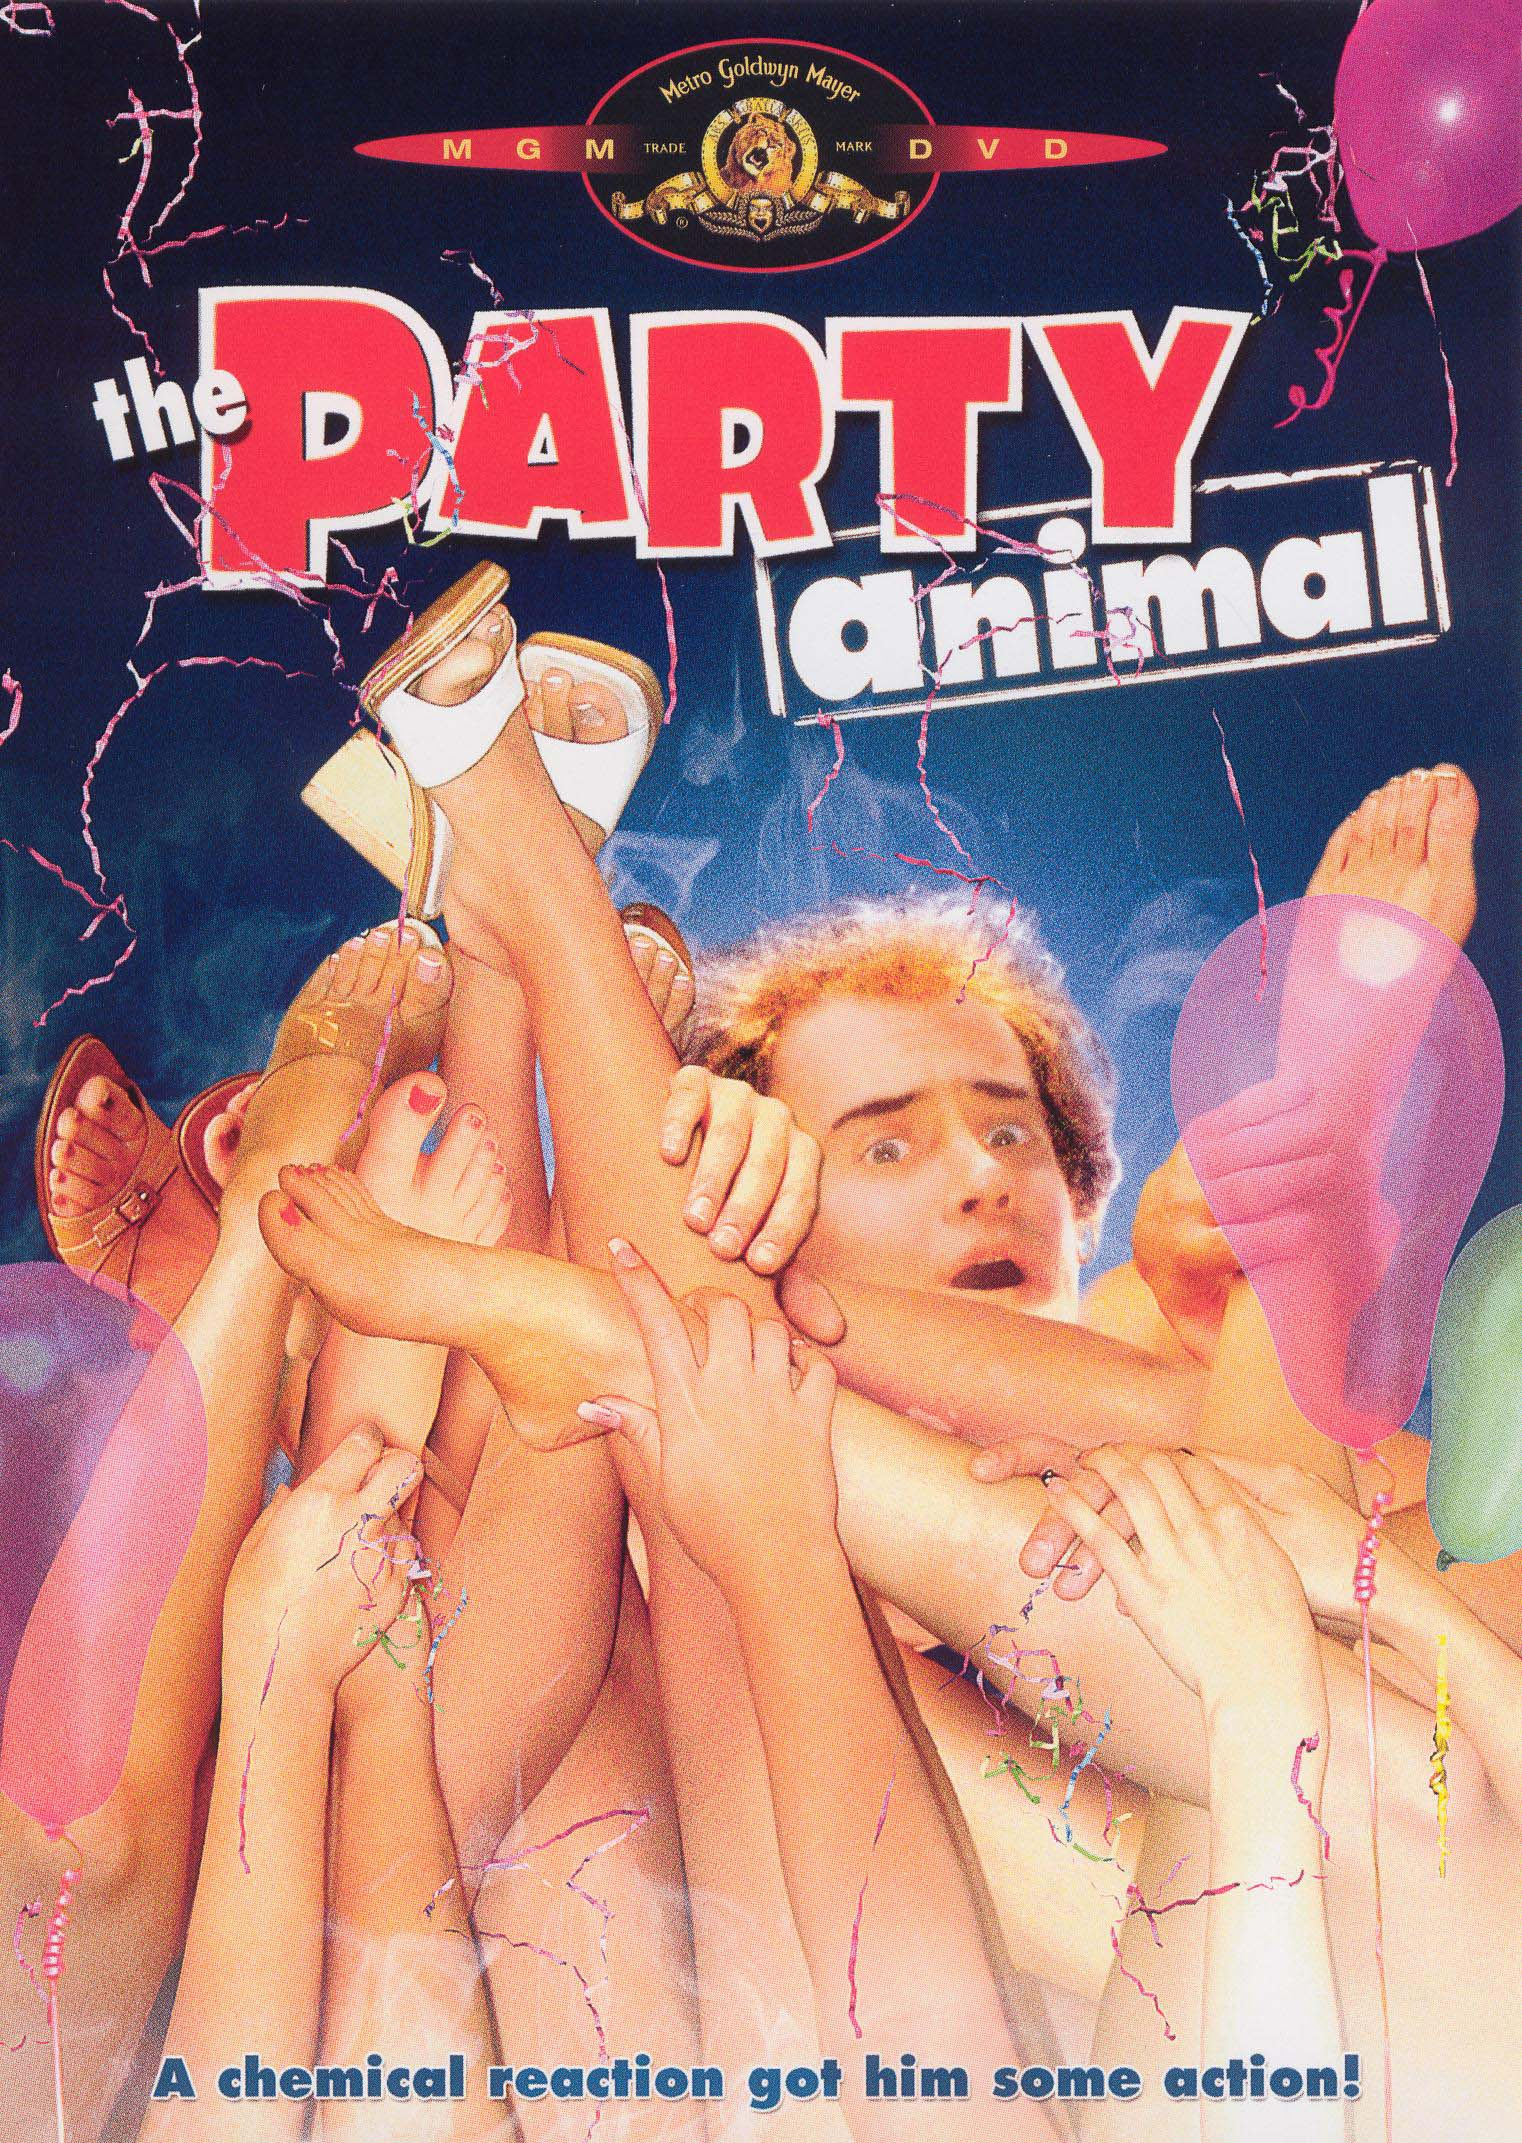 The Party Animal (1985)